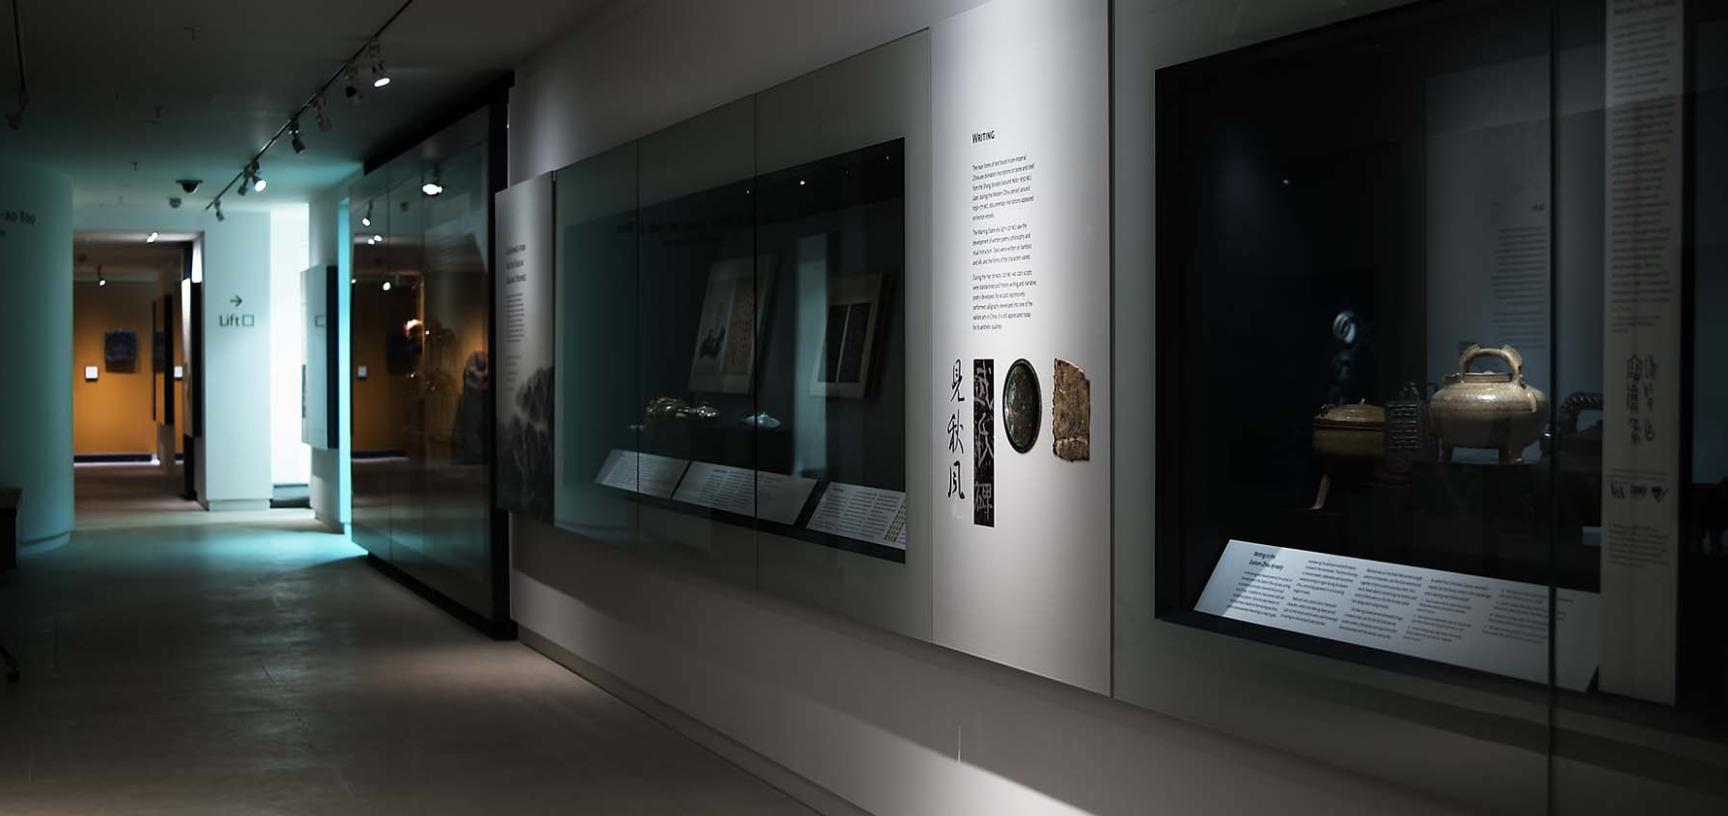 The China to AD 800 Gallery at the Ashmolean Museum